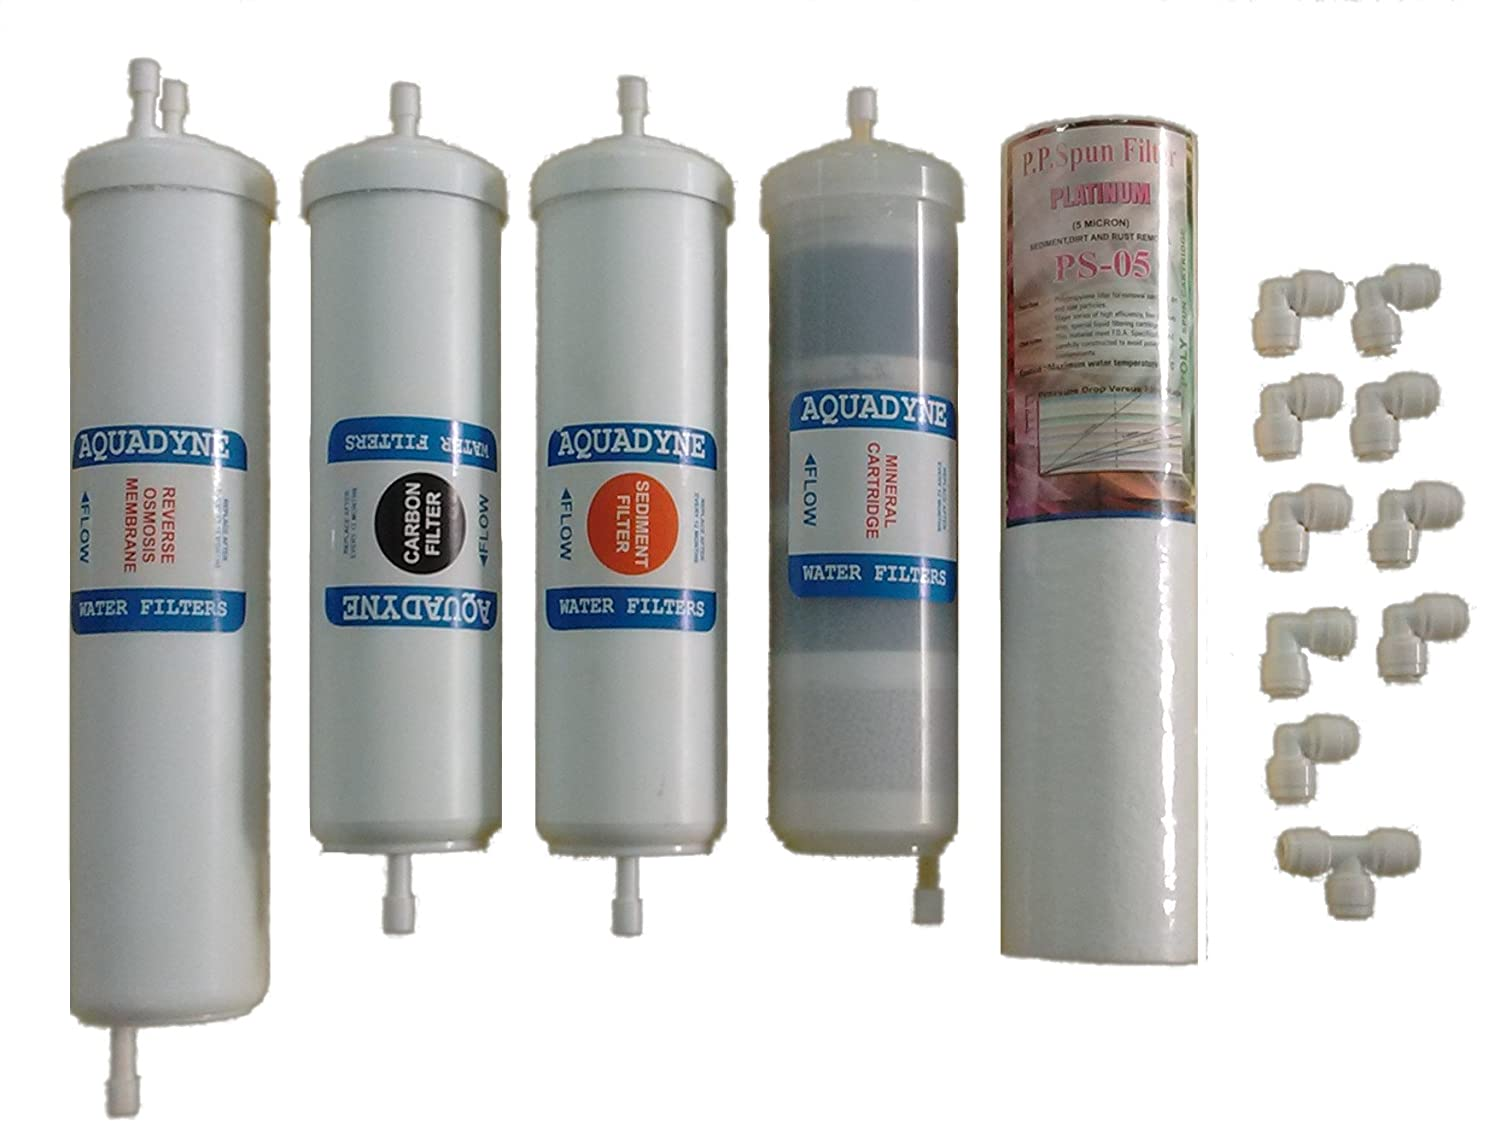 ae96c41b9 Aquadyne Water Filters Ro Spares Service Filter Cartridges For Kent Ro  Water Purifier  Amazon.in  Home   Kitchen